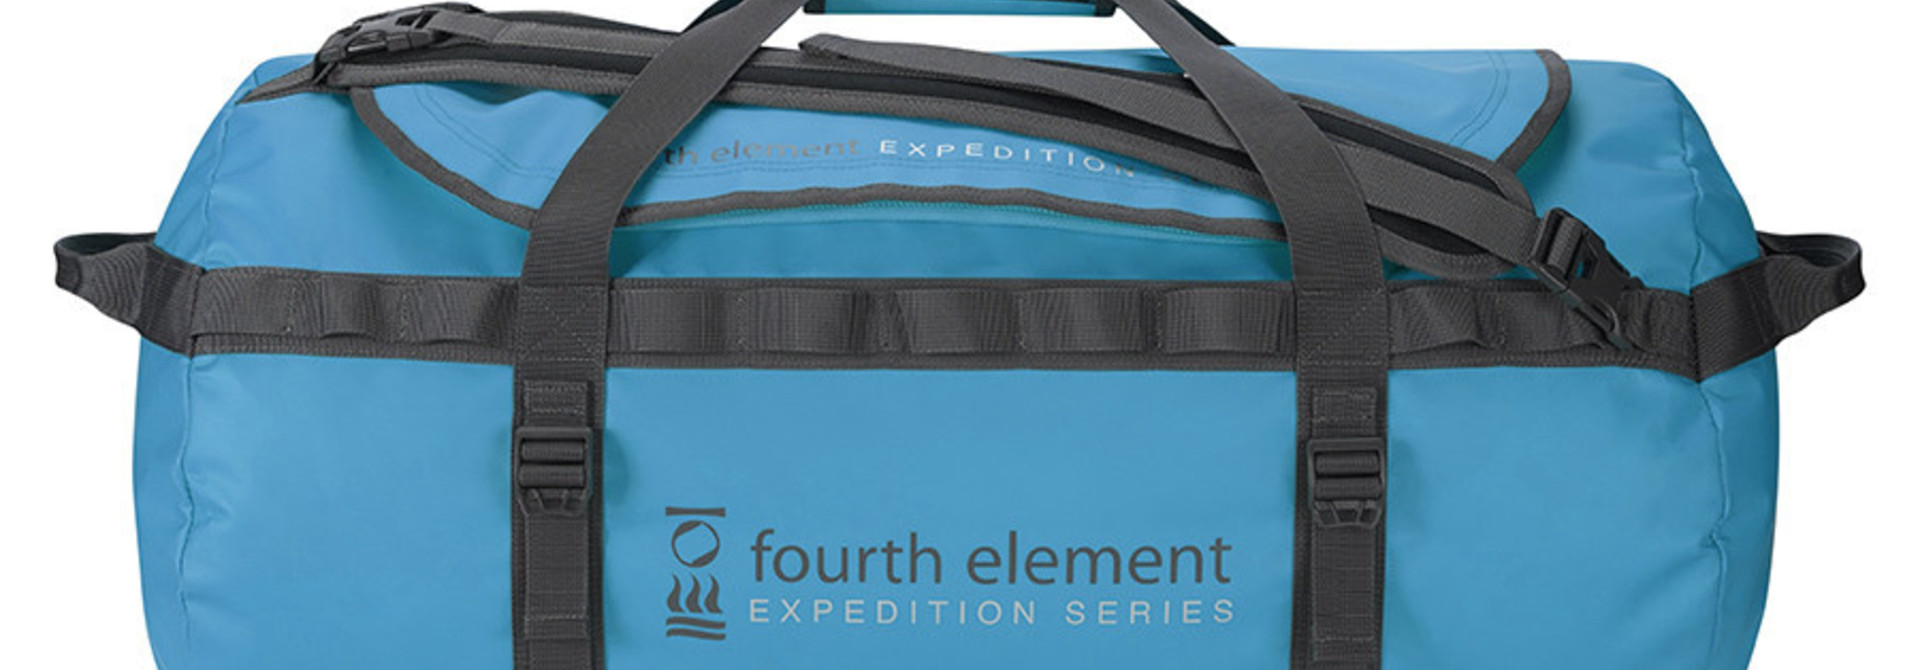 Expedition Duffelbag Blauw